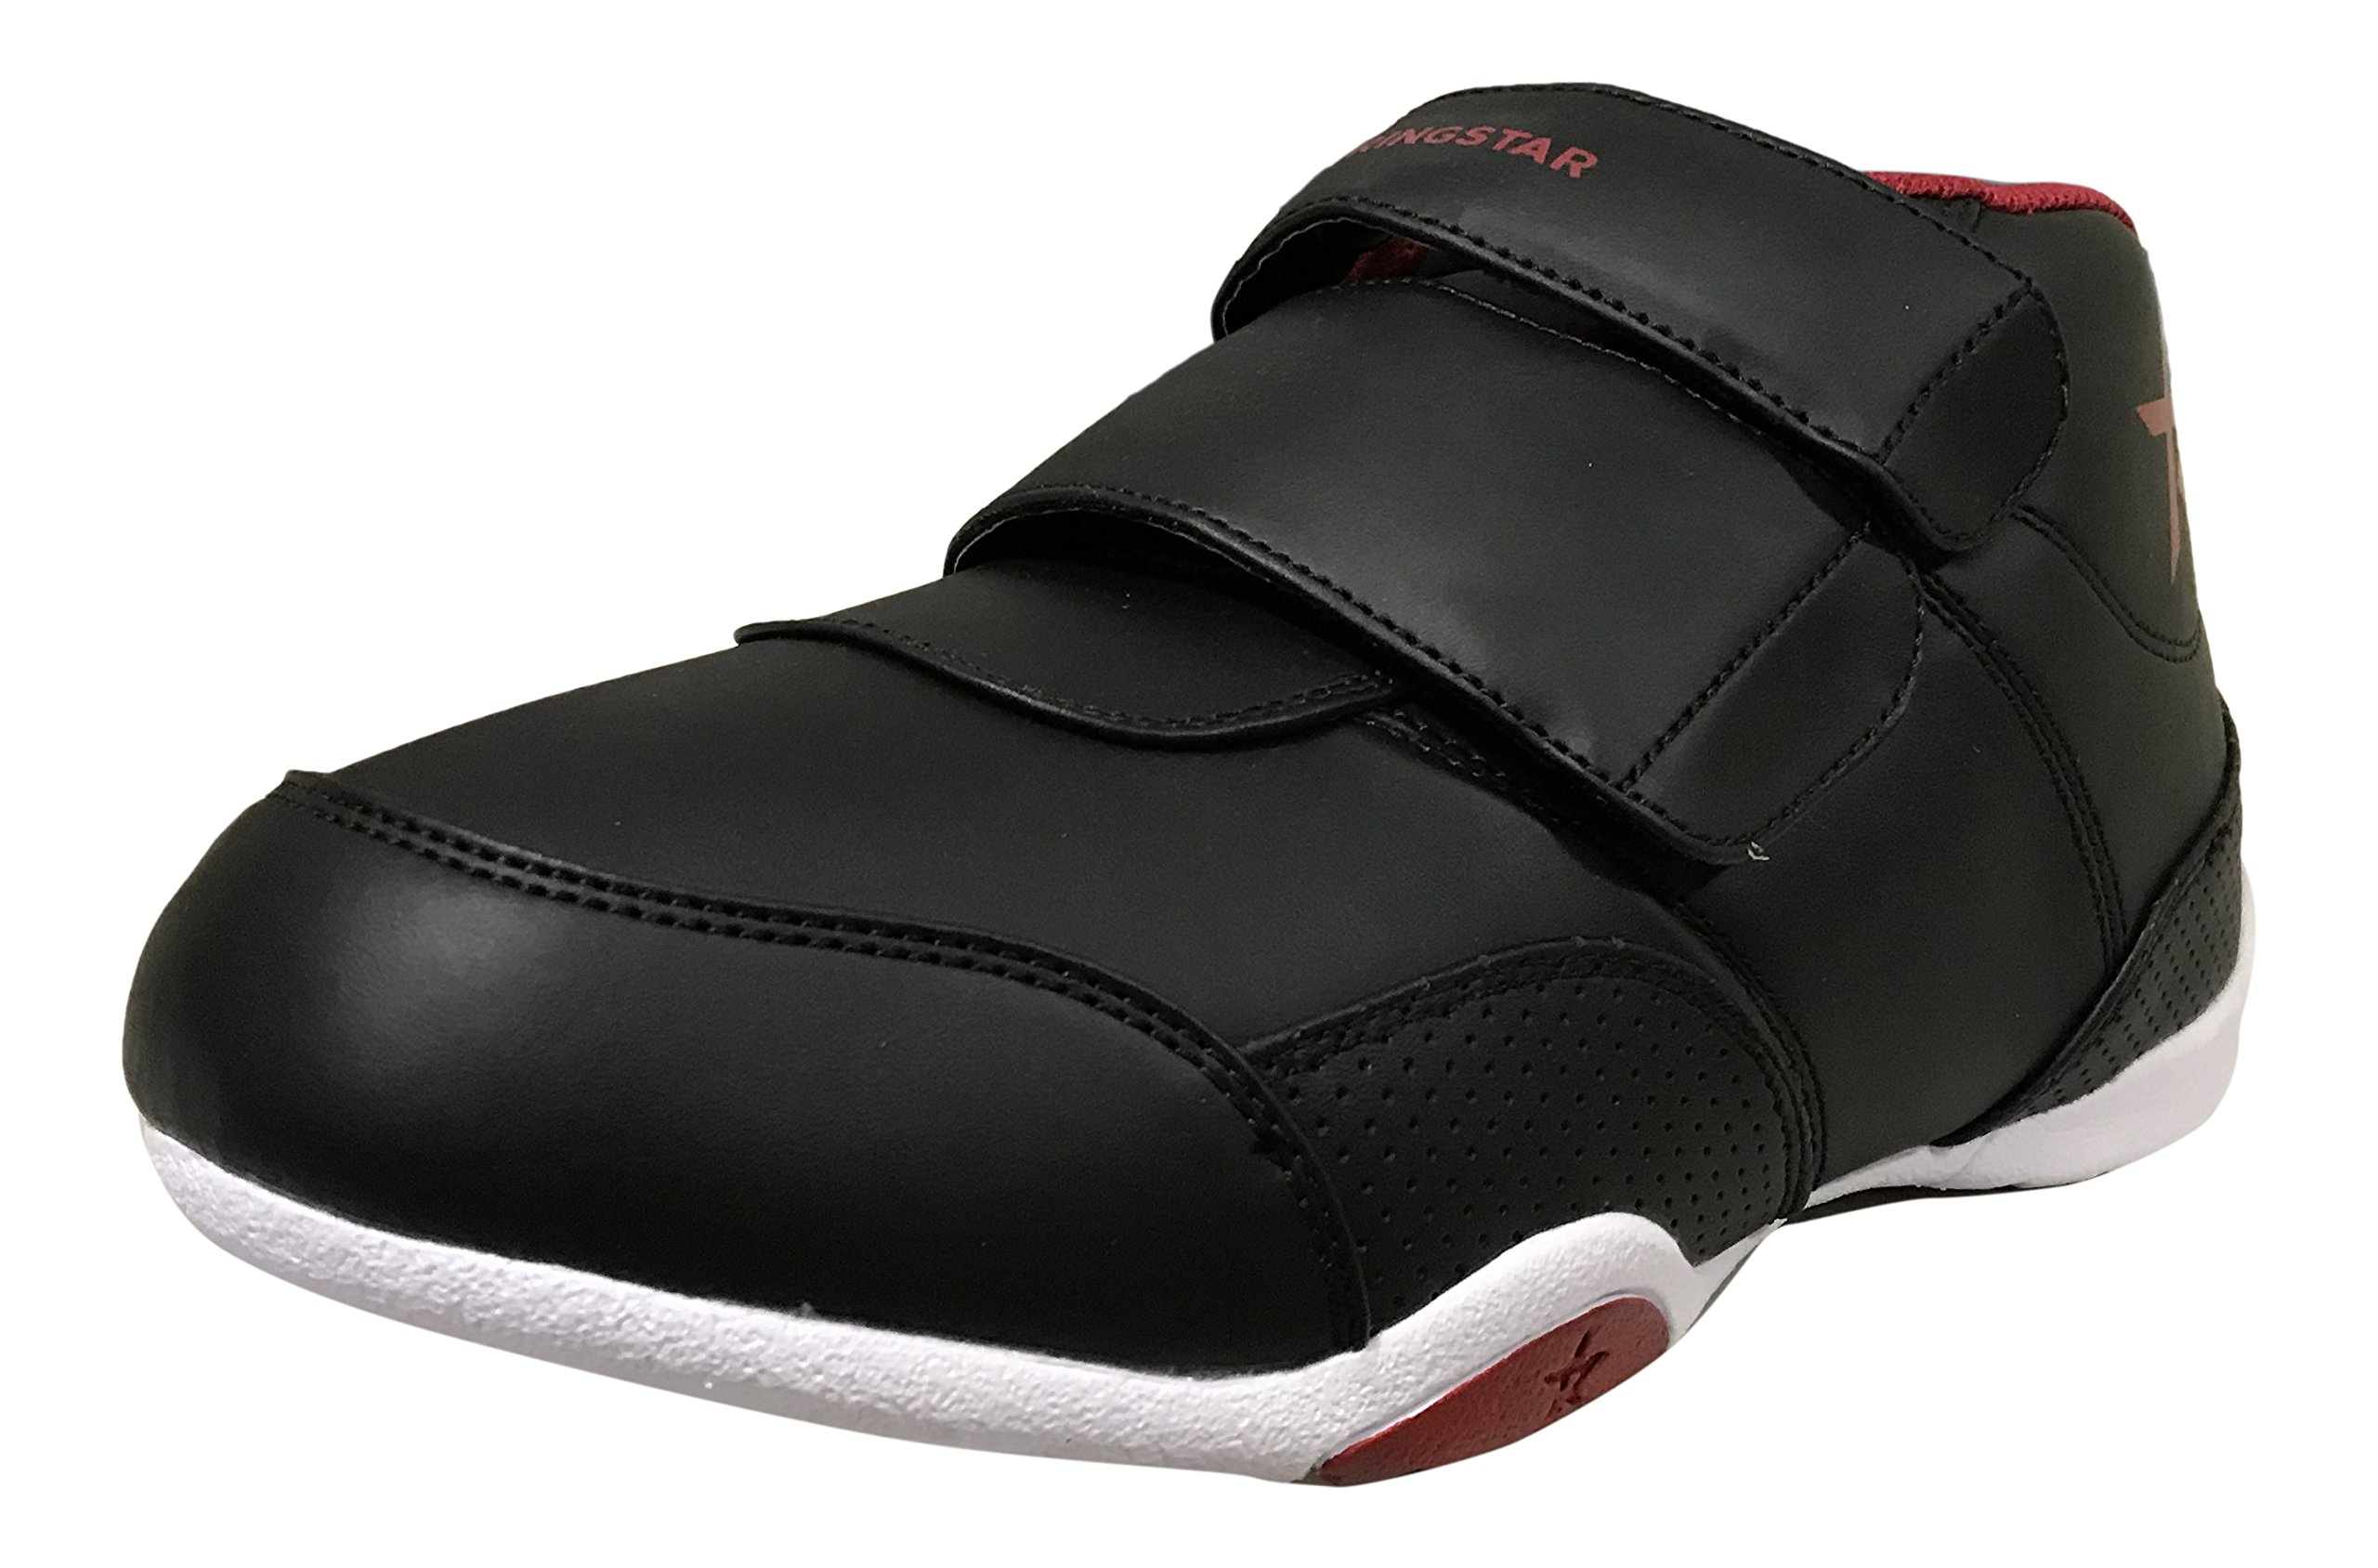 Ringstar Unisex Fight Pro V2 Martial Arts Shoes, Black/Red, Youth 2 by Ringstar